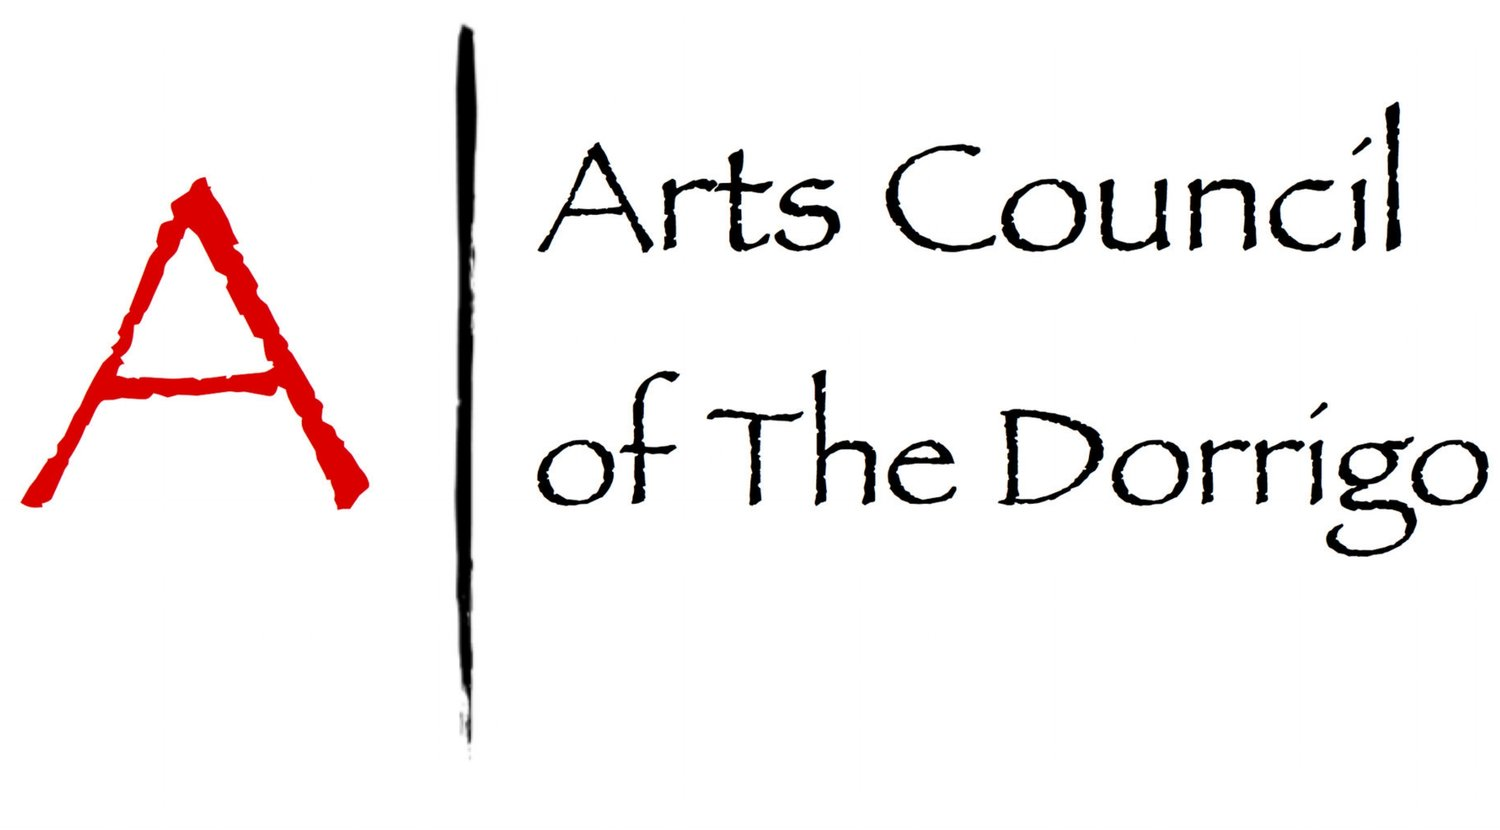 Arts Council of The Dorrigo